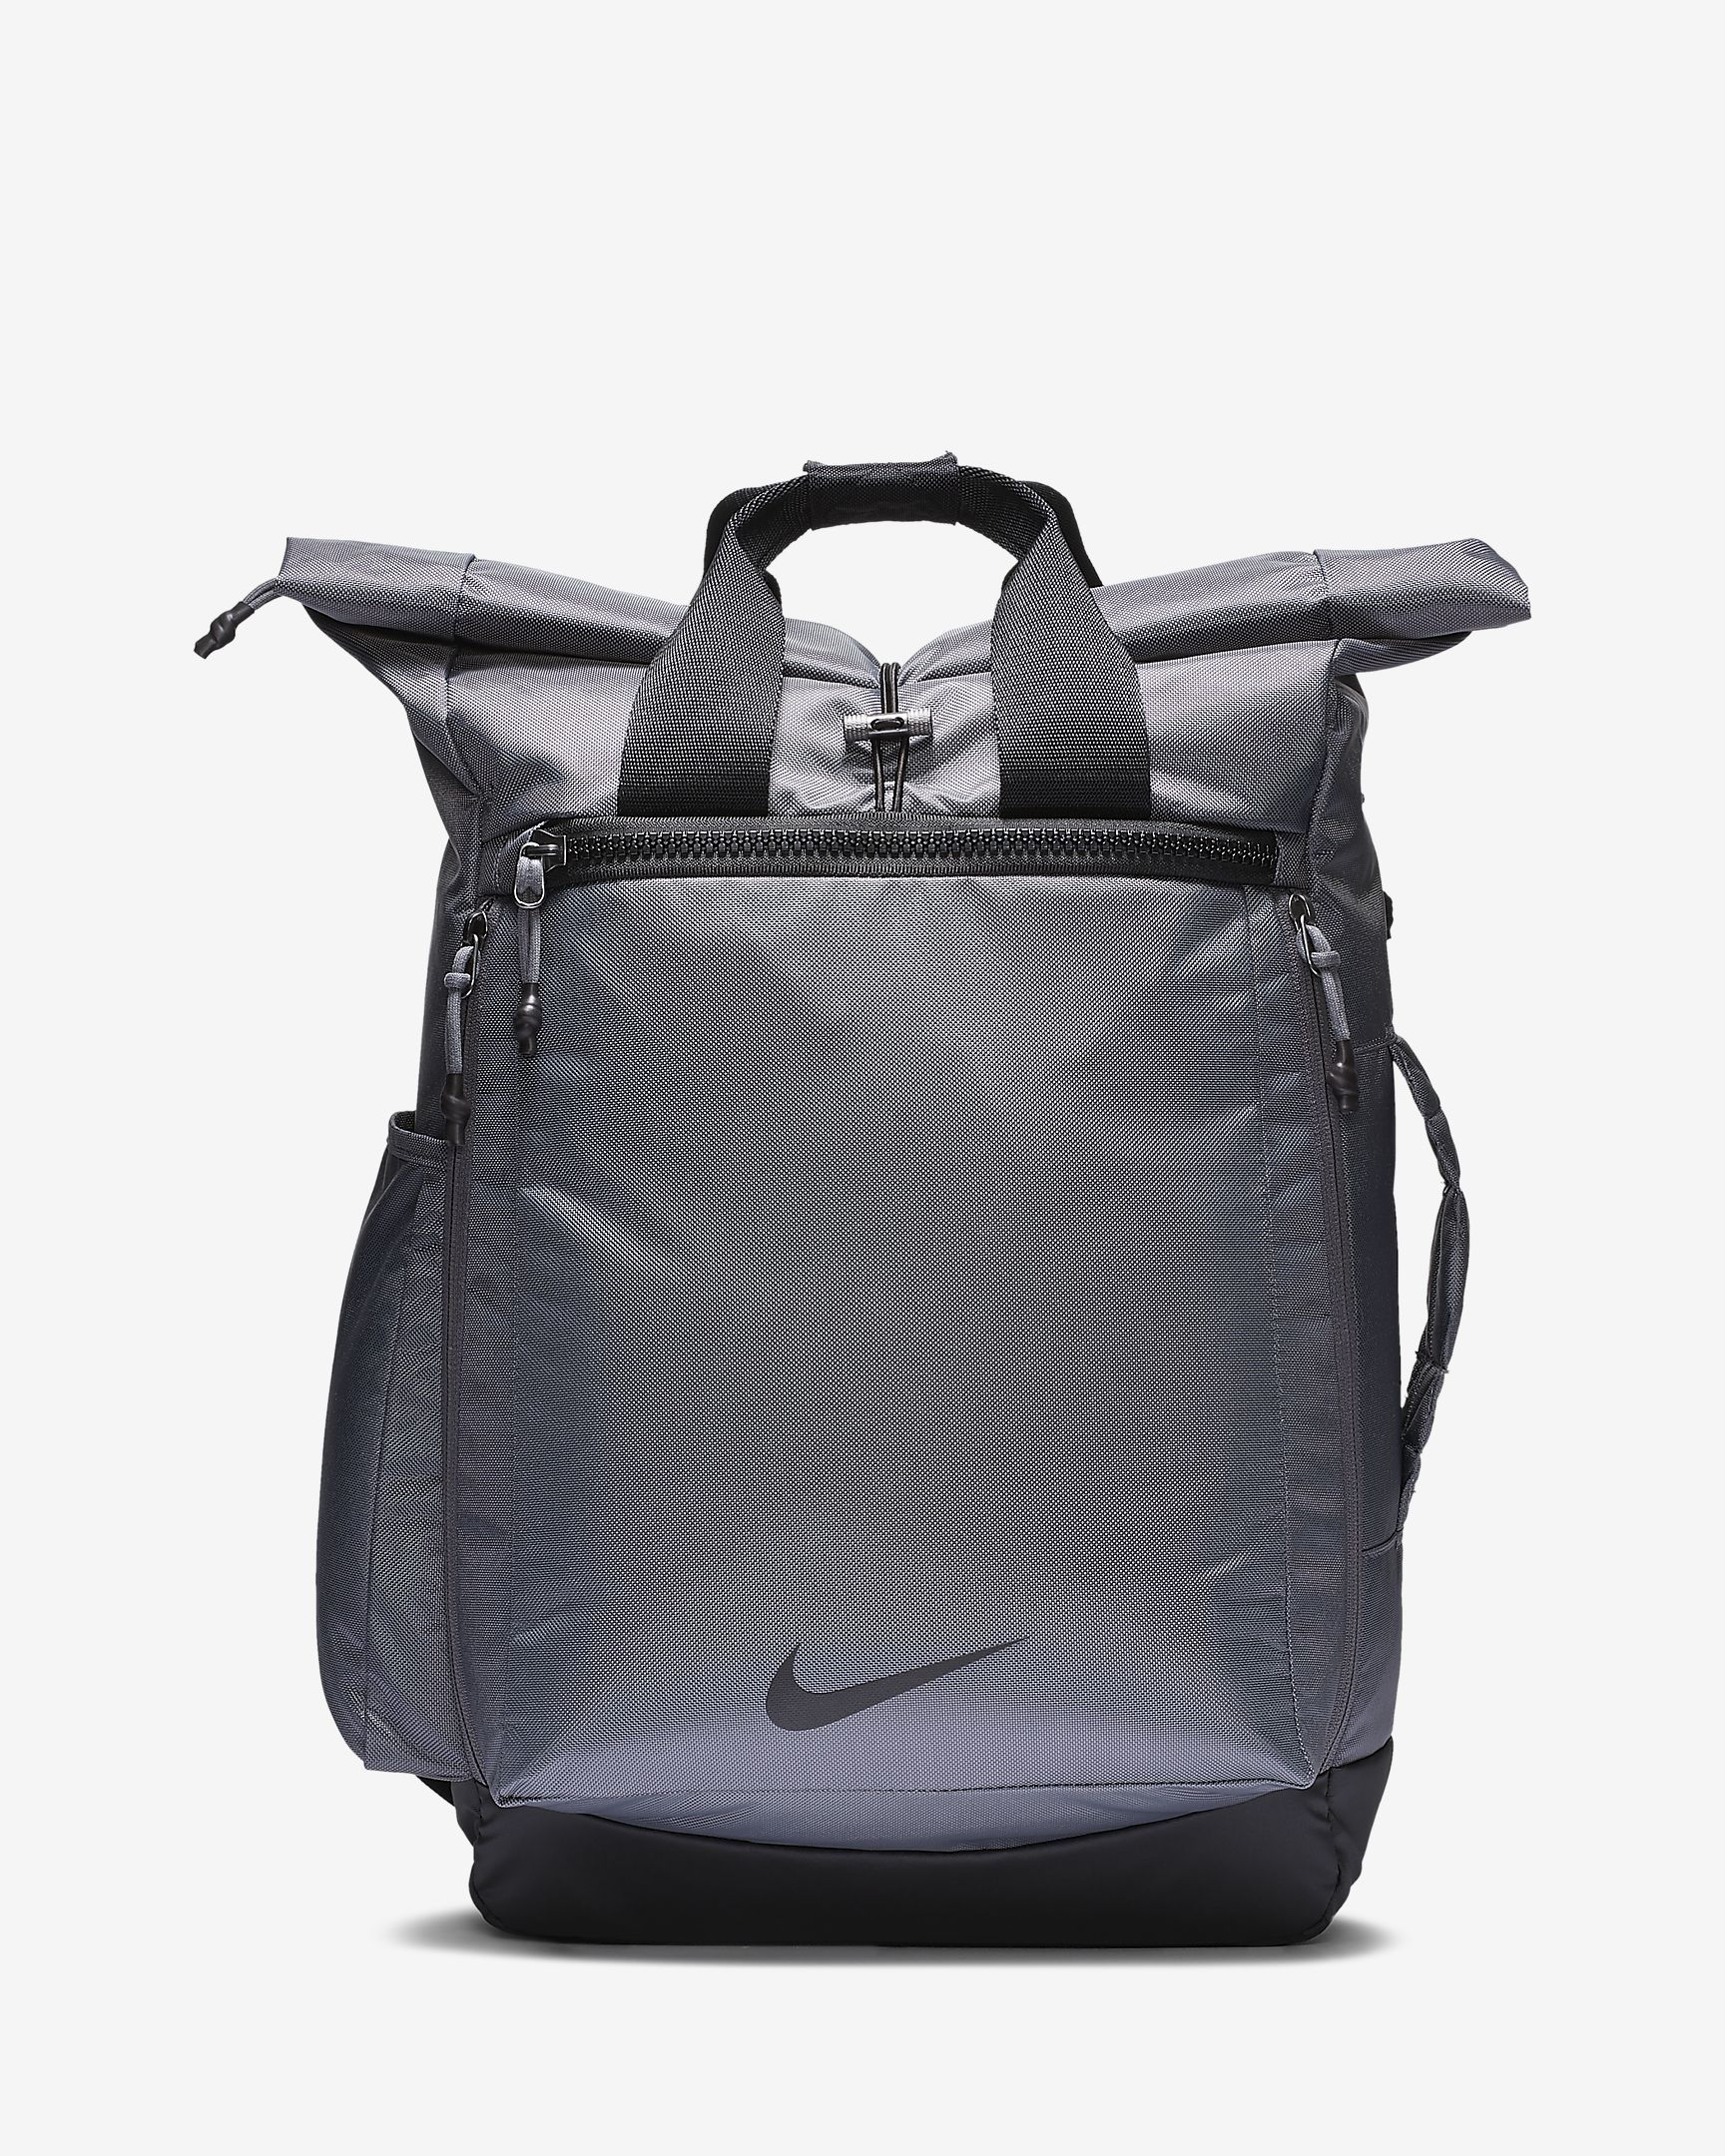 6672aaedac2a Nike Vapor Energy 2.0 Training Backpack Backpacks